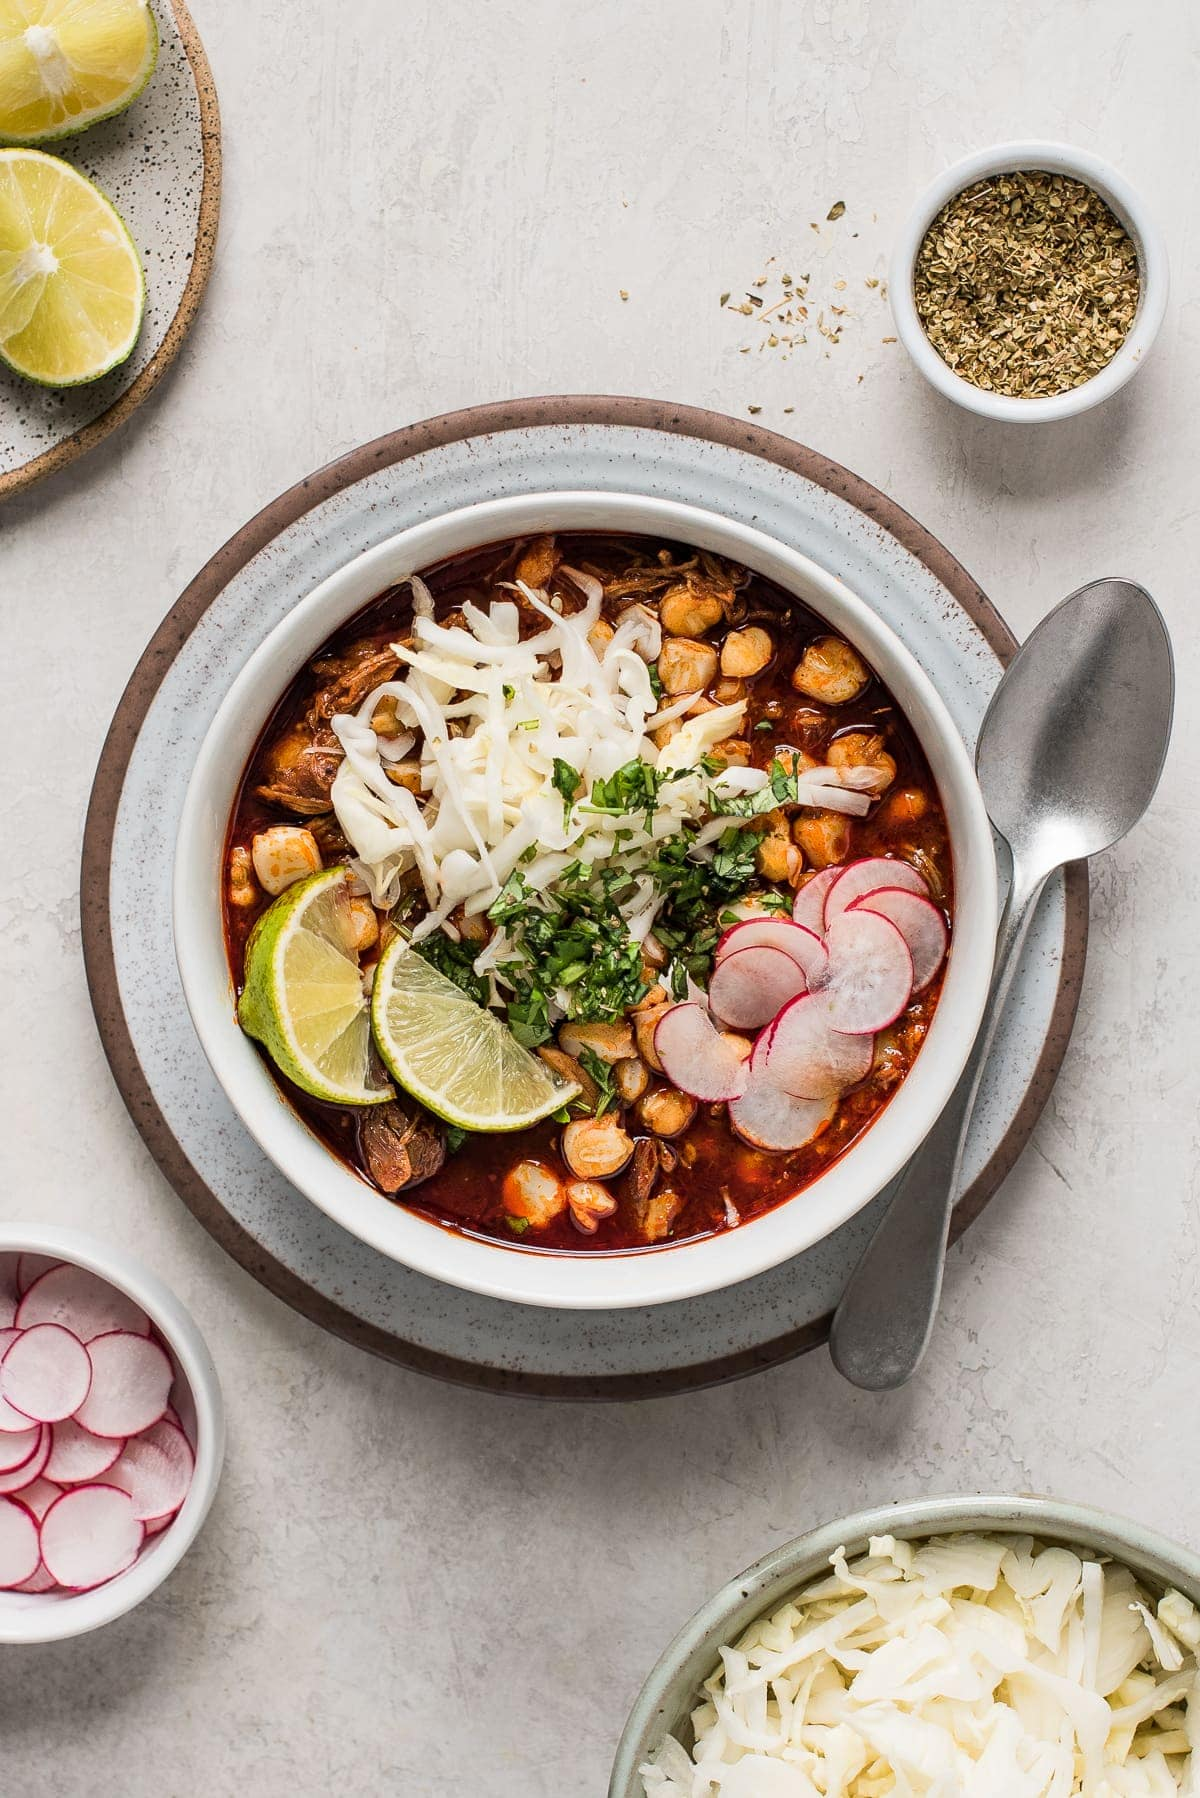 Red posole in a bowl topped with cabbage, radishes, cilantro, and limes.